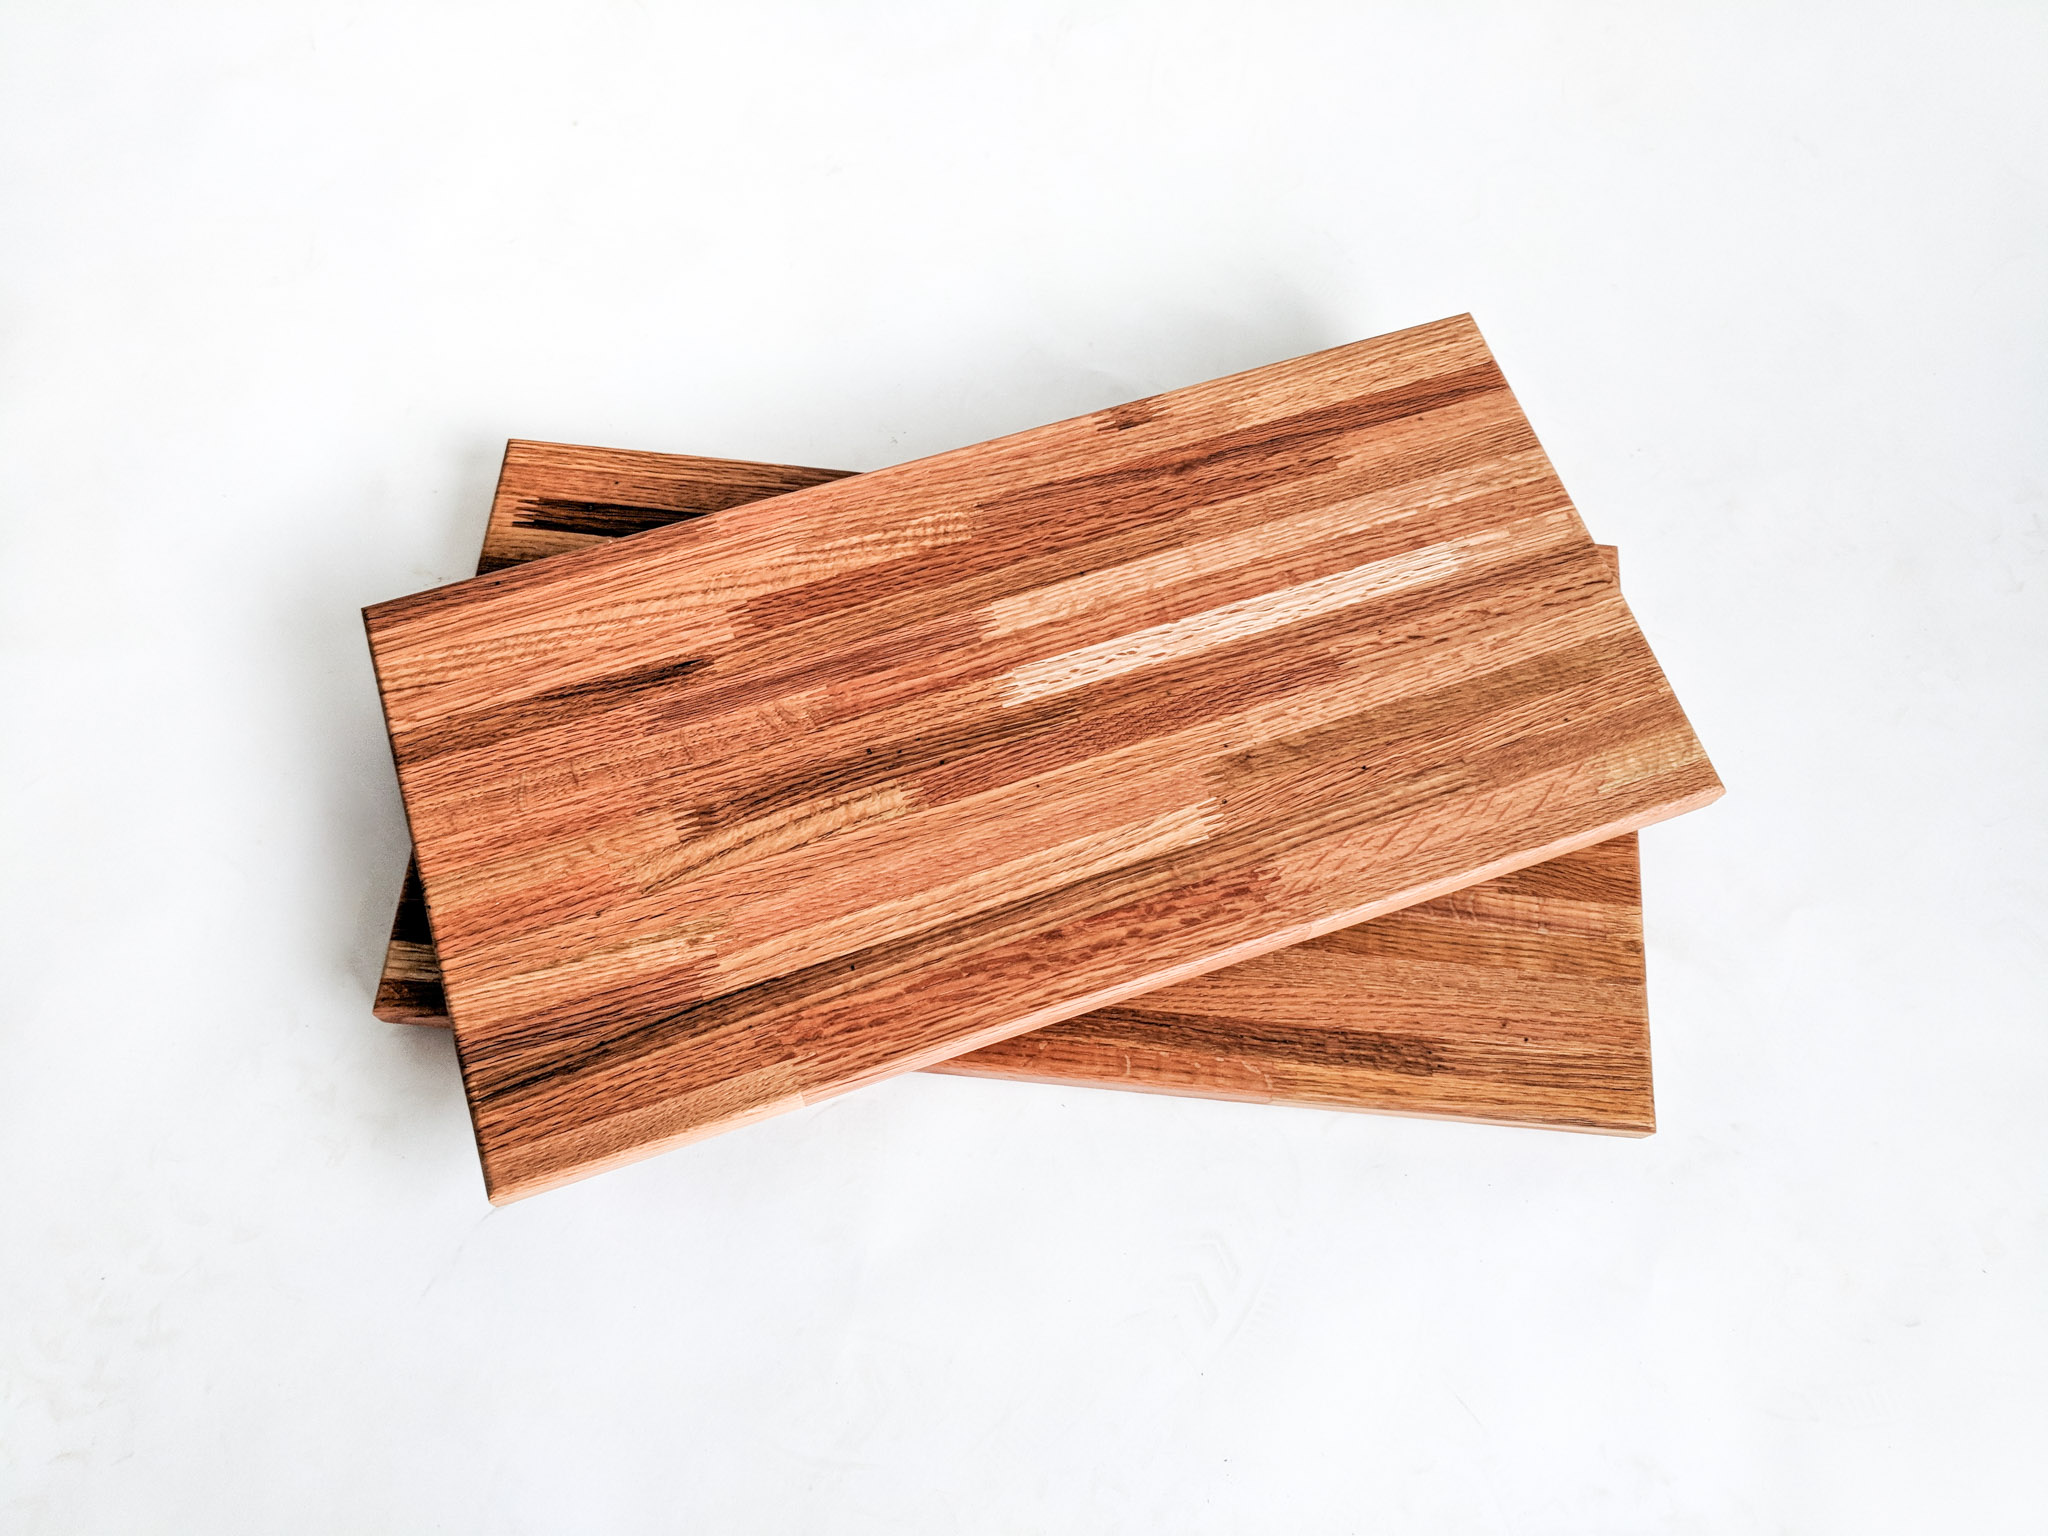 CuttingBoards-071418-14.jpg